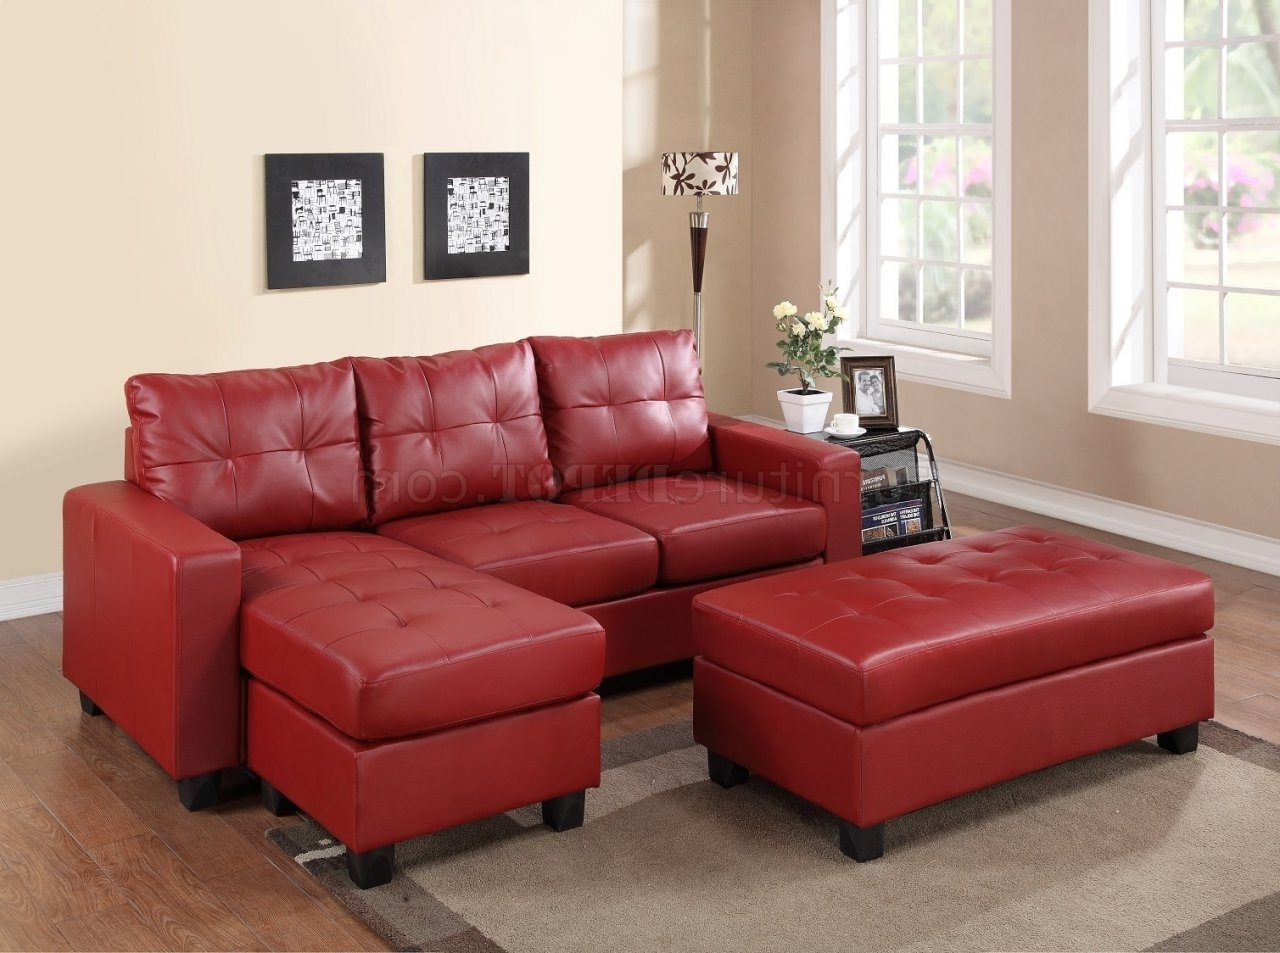 Most Popular Red Leather Sectionals With Chaise Within 2511 Sectional Sofa Set In Red Bonded Leather Match Pu (View 12 of 20)